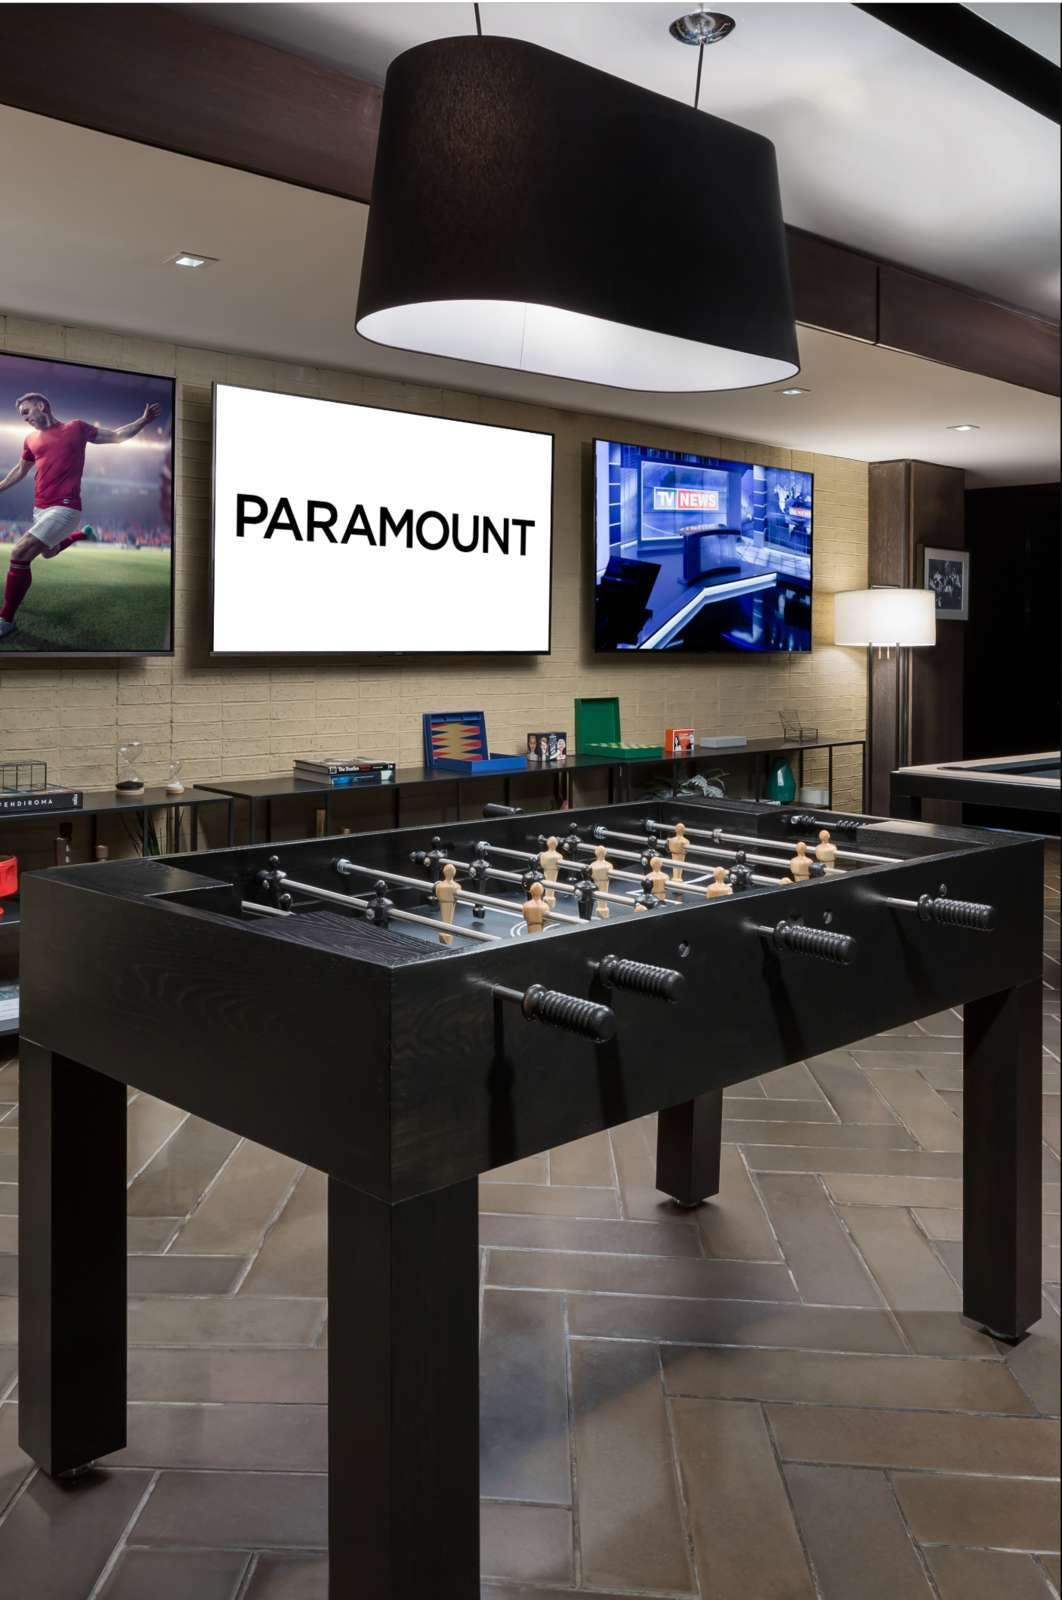 Paramount Hotel Times Square